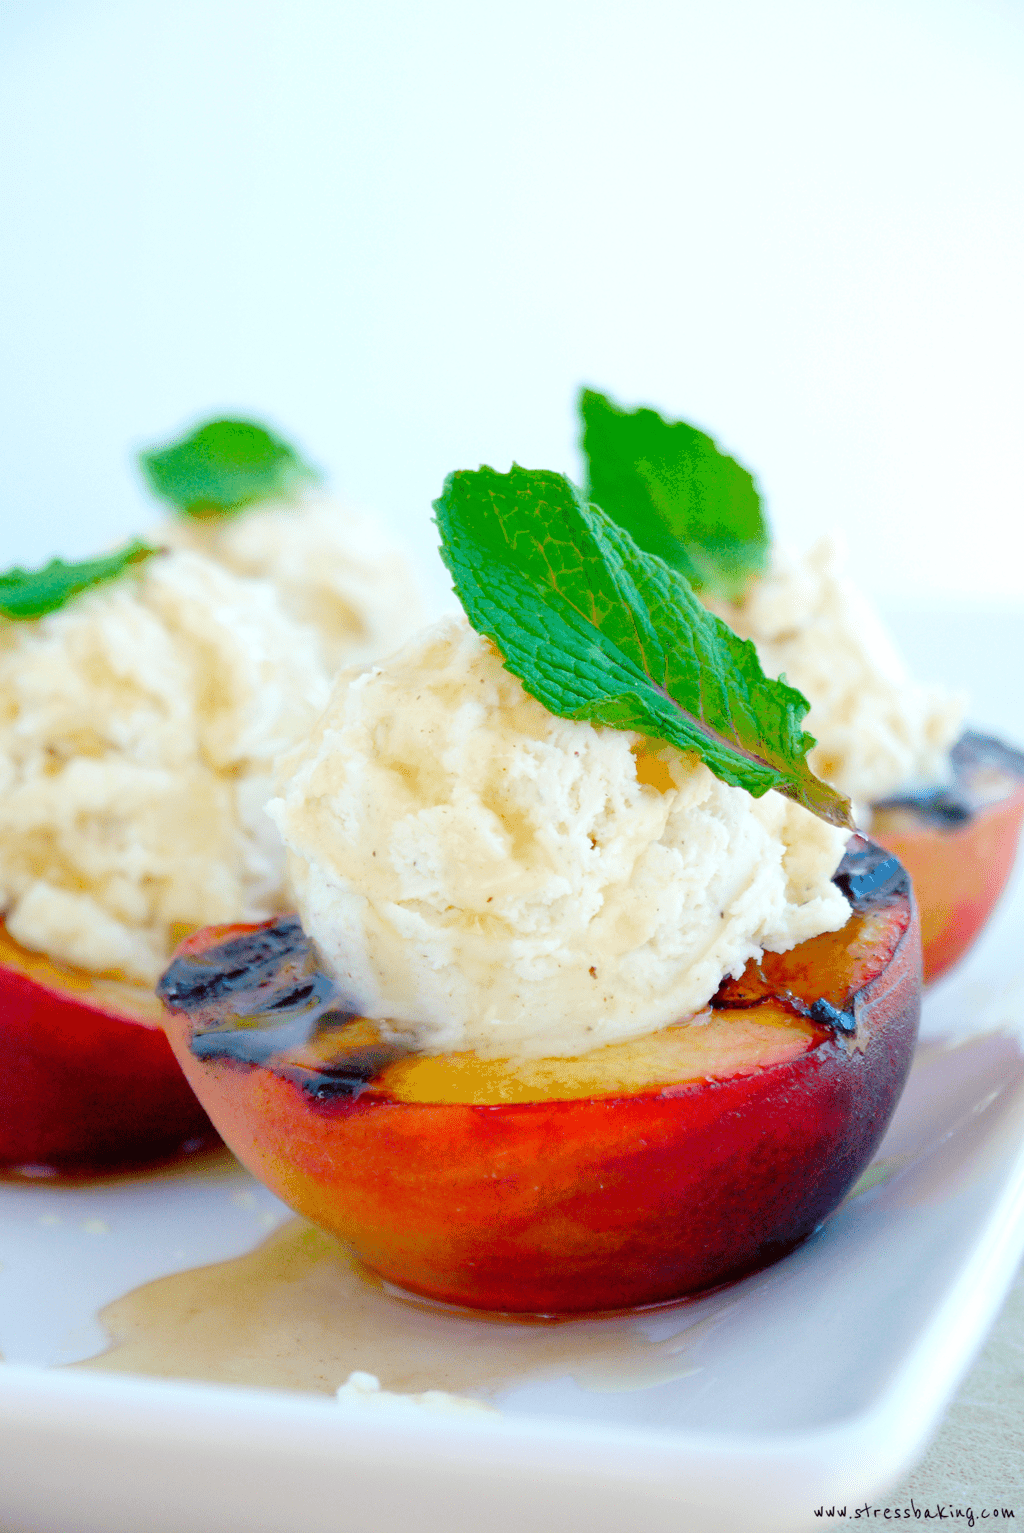 Grilled Peaches with Cinnamon Mascarpone Whipped Cream & Honey: A sophisticated looking summer dessert that is easy, colorful and packed with flavor! Soft, juicy grilled peaches are complemented by cinnamon mascarpone whipped cream and drizzled with raw wildflower honey. | stressbaking.com @stressbaking #stressbaking #peachesandcream #grillingseason #summer #peachesncream #fruit #recipe